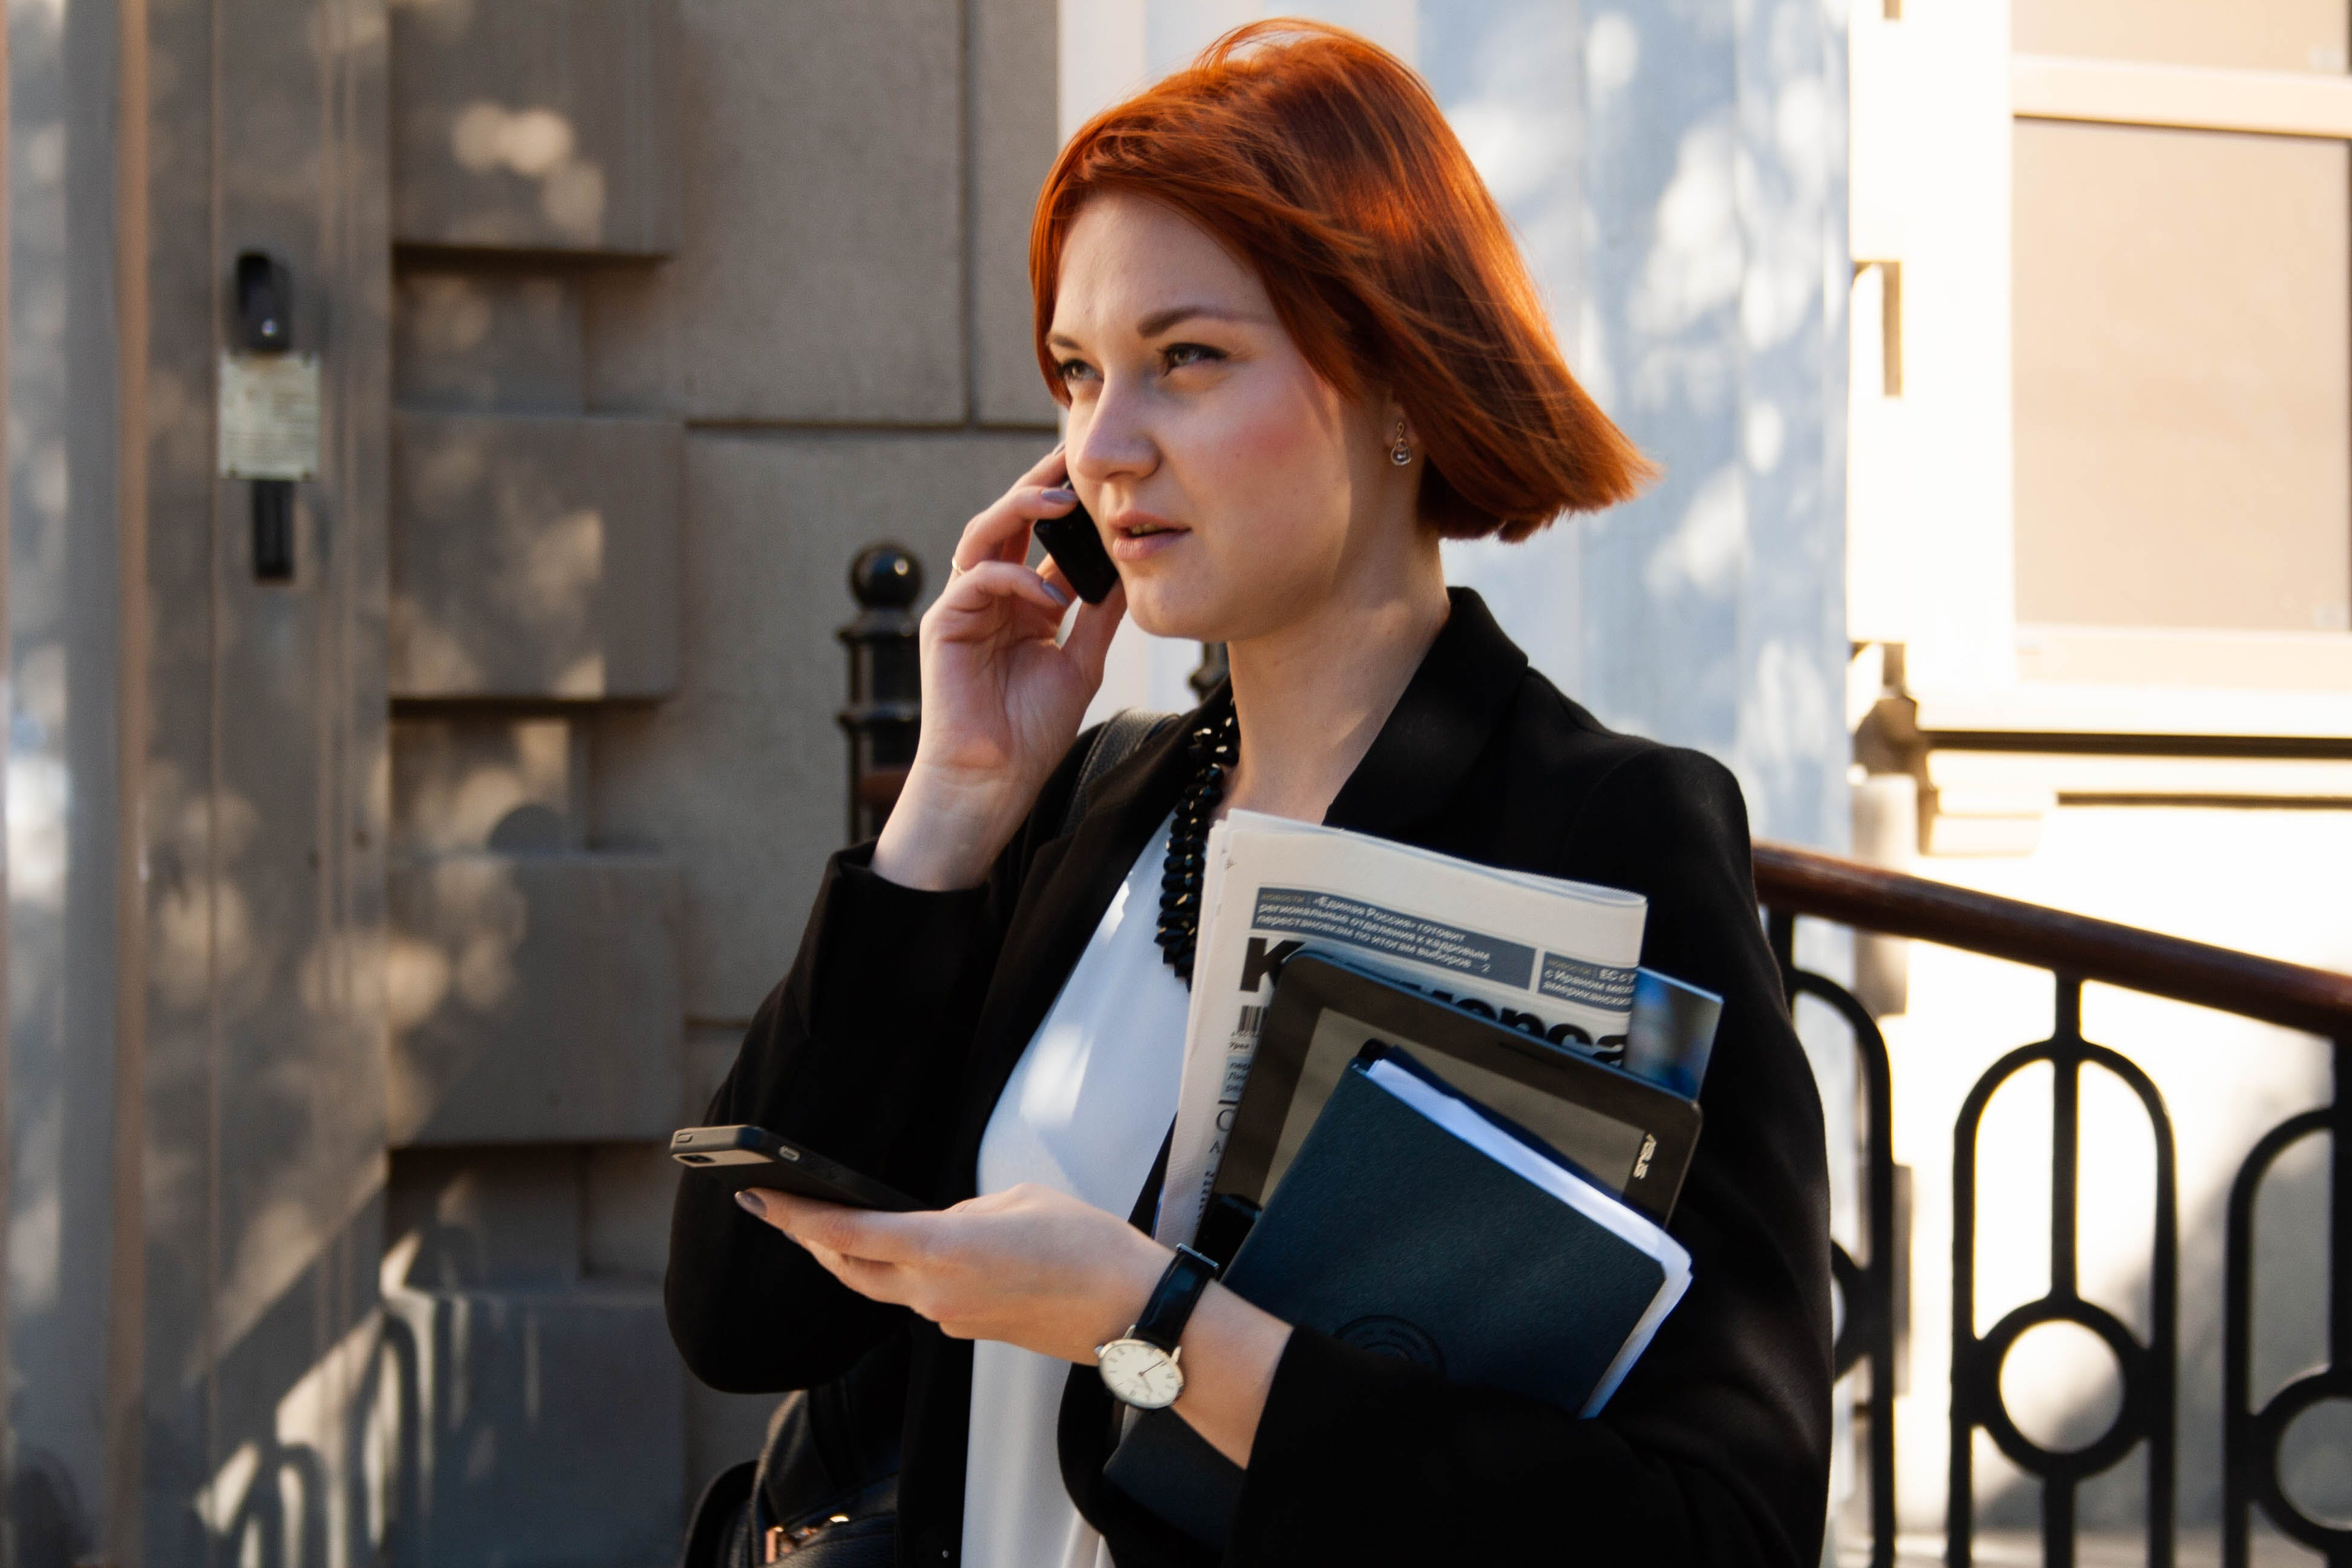 Woman Talking to Her Phone